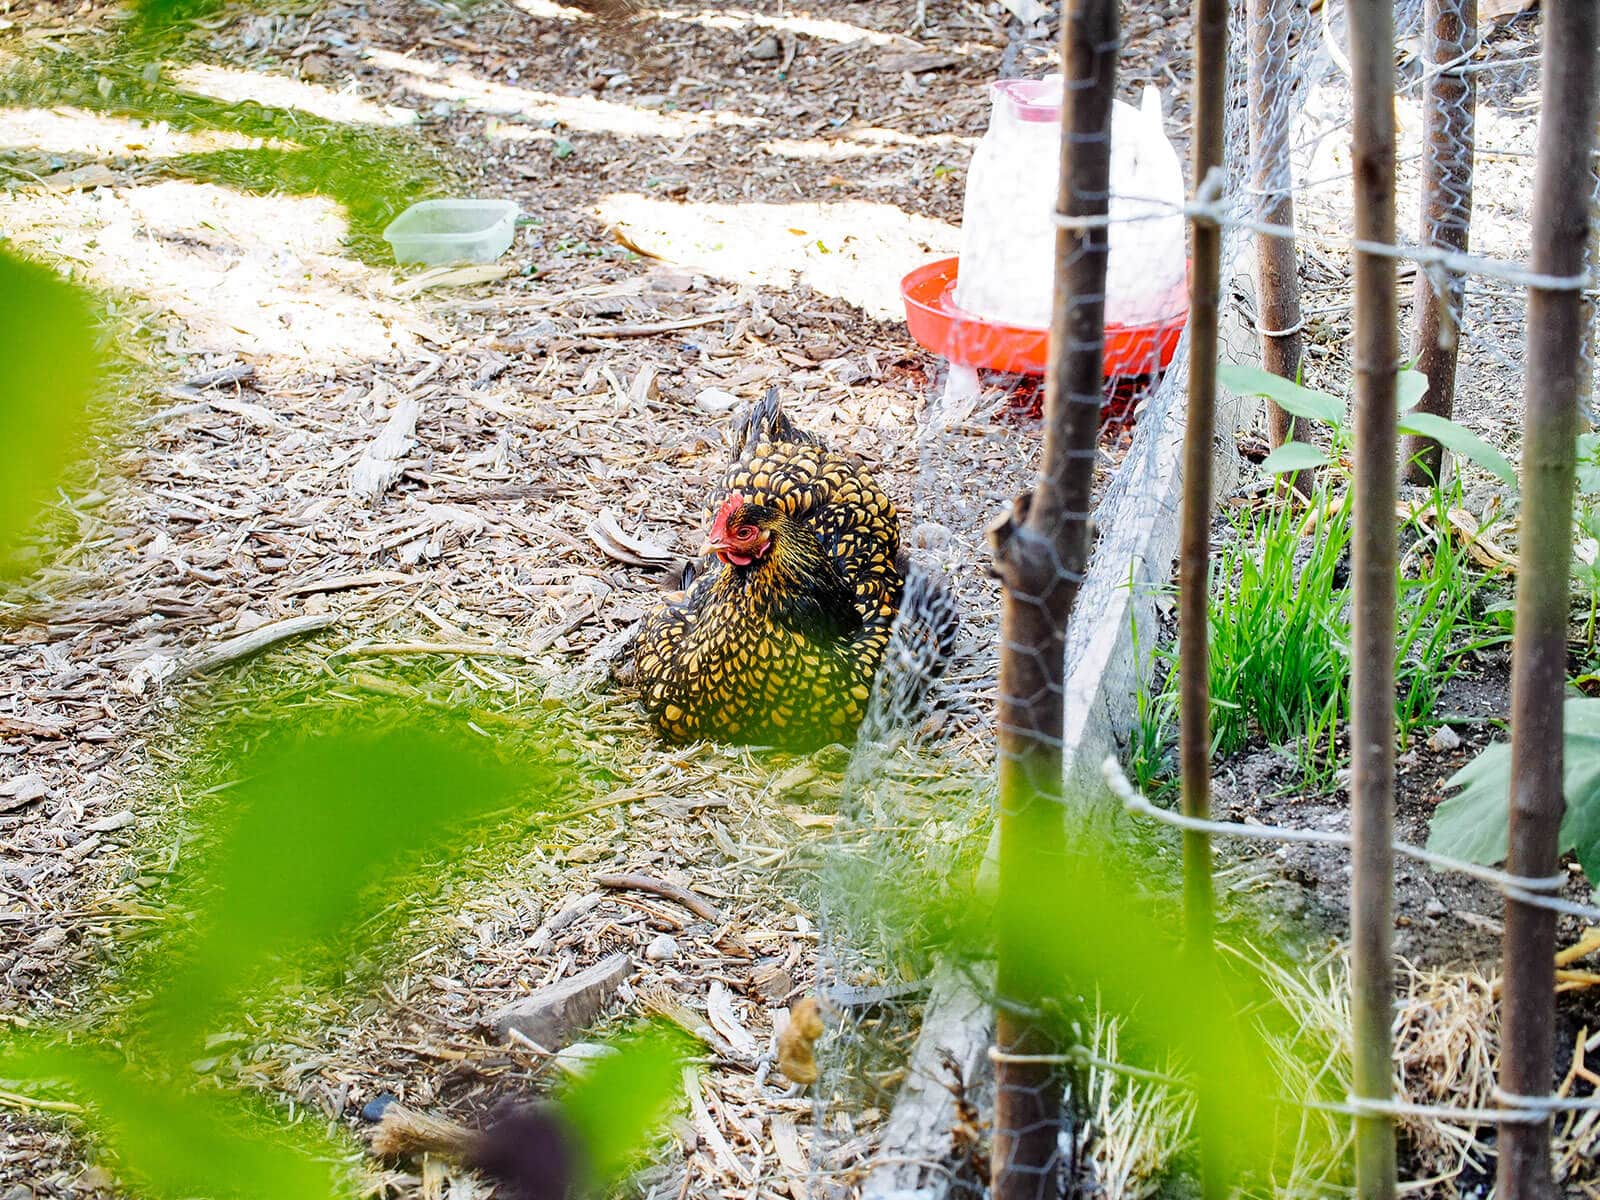 A broody chicken will sit just about anywhere, including a pile of mulch